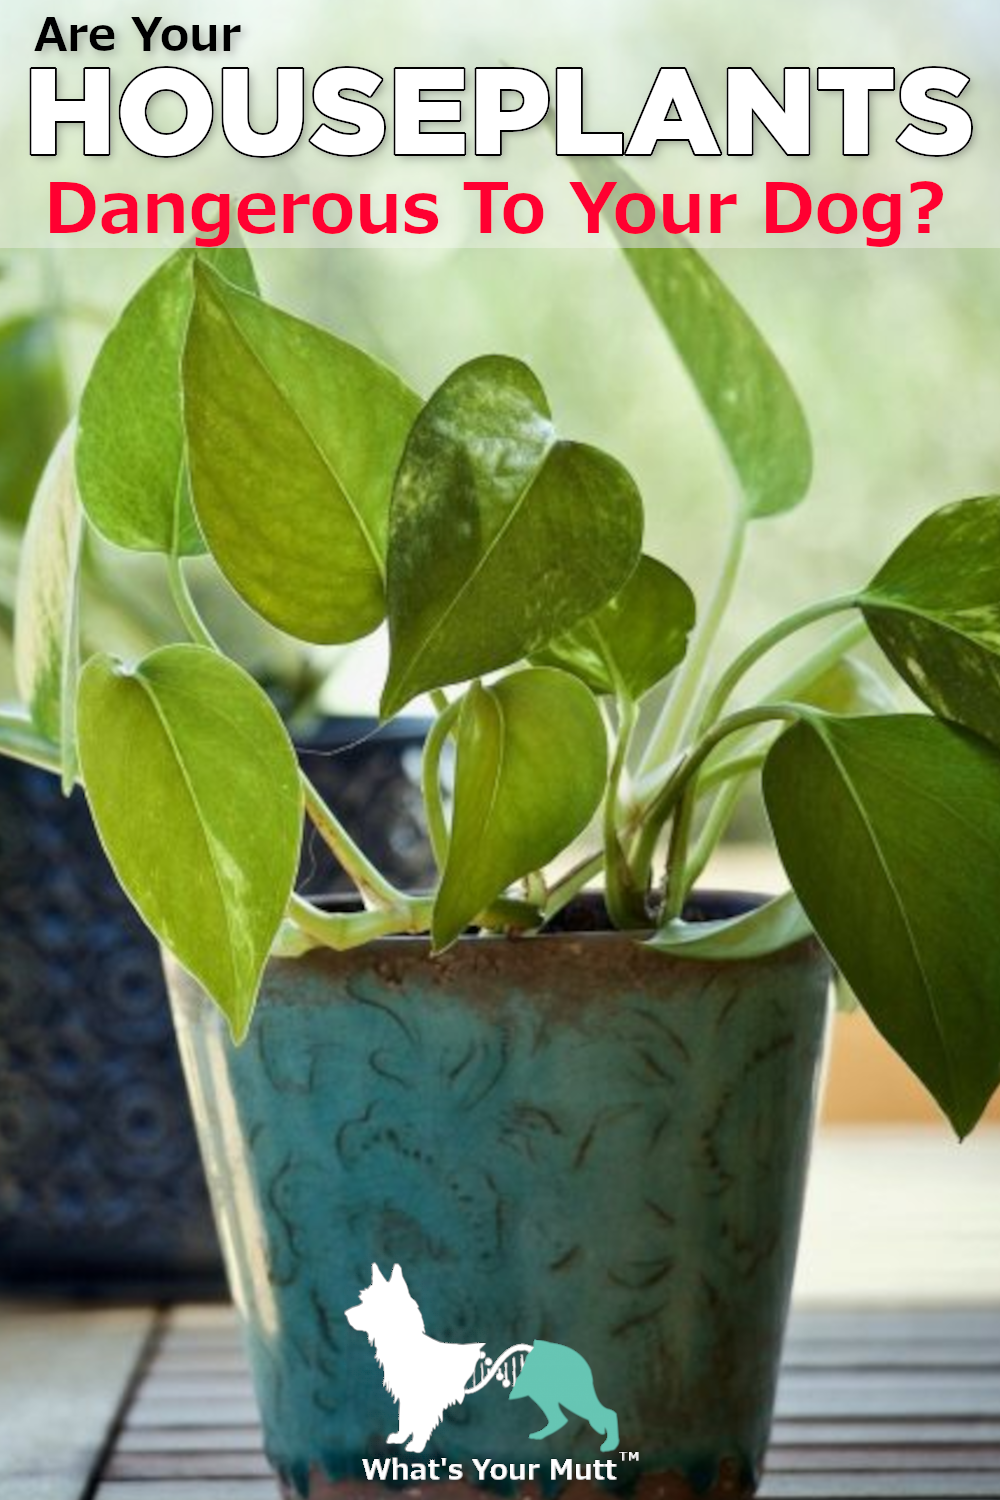 What's Your Mutt DNA Houseplants Dangerous For Dogs